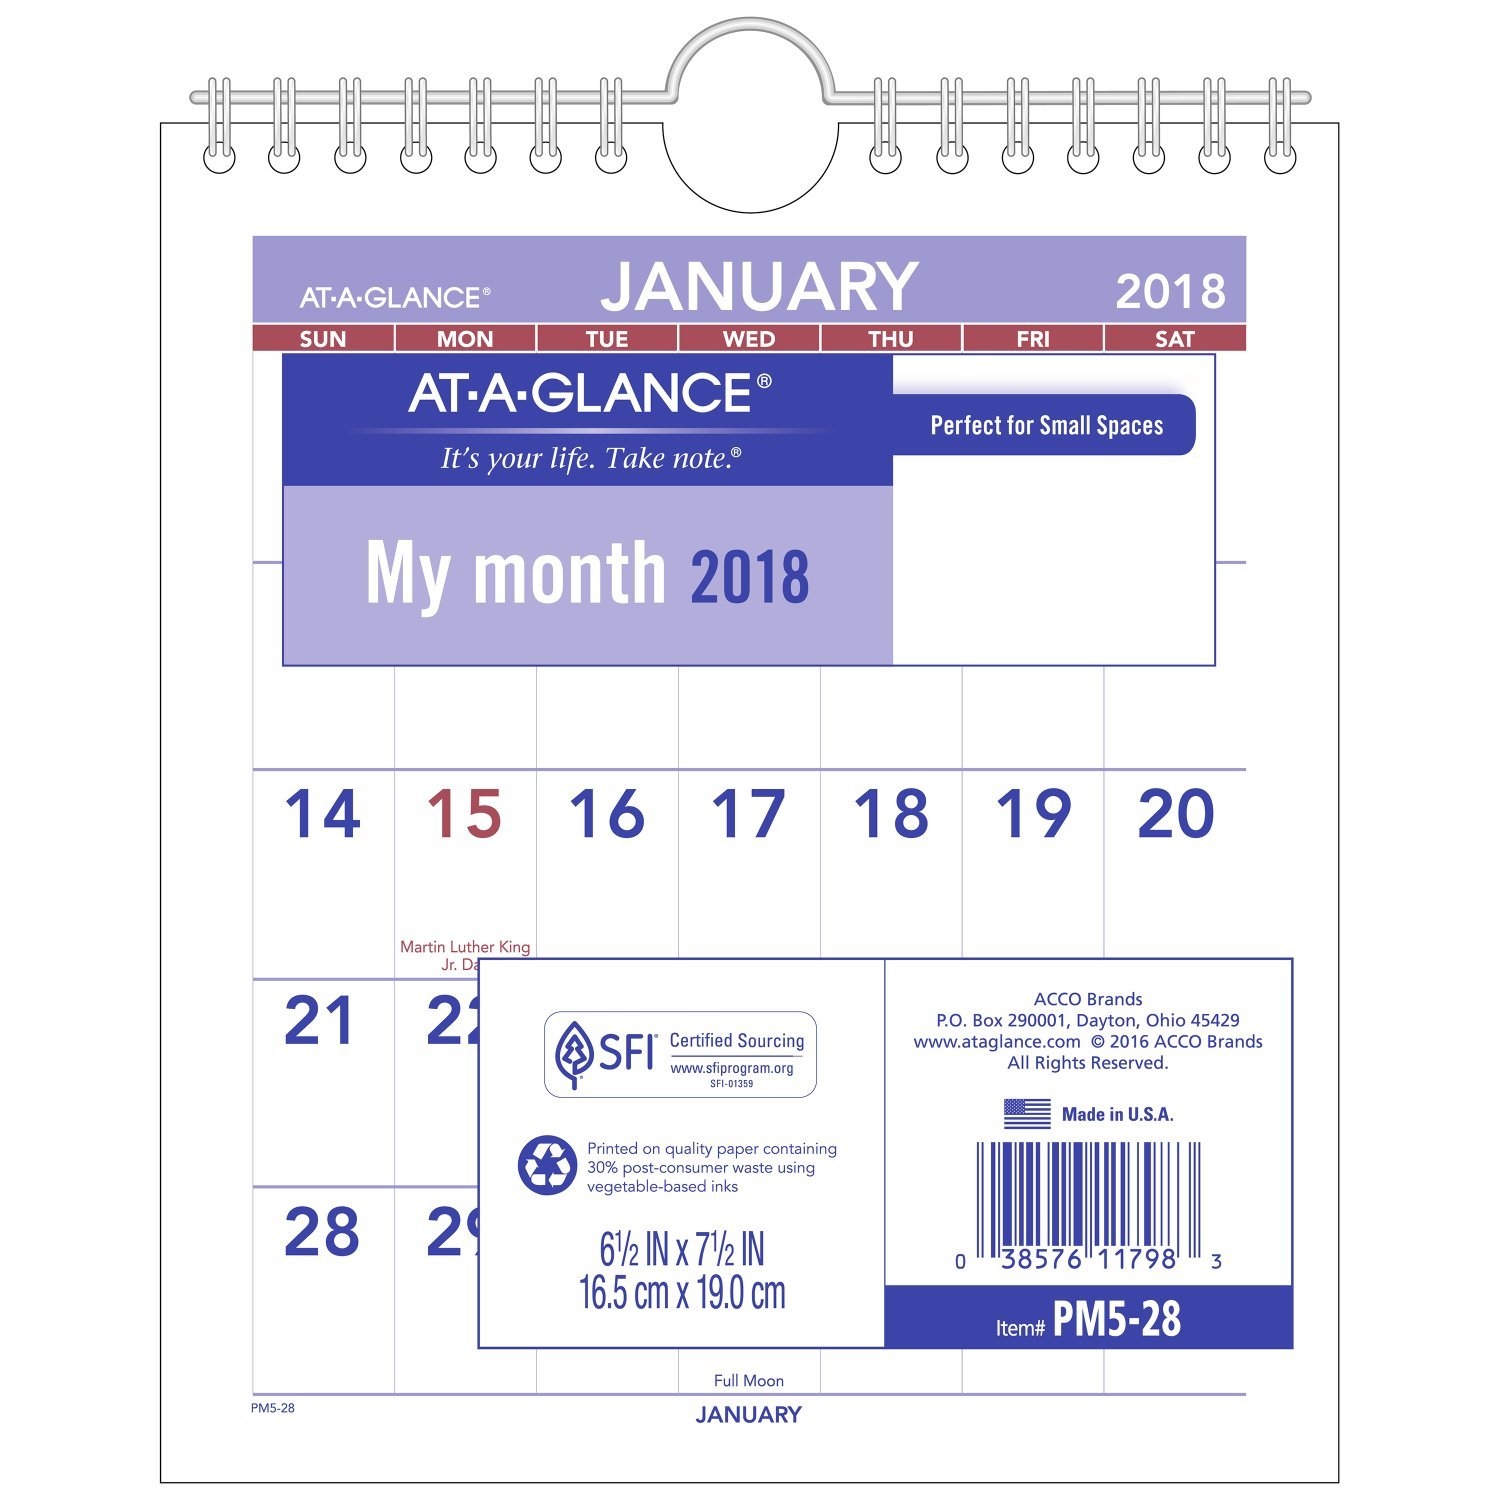 """At-A-Glance PM528-18 Monthly Wall Calendar, January 2018 - December 2018, 6-1/2"""" x 7-1/2"""", Mini Size (PM528)"""